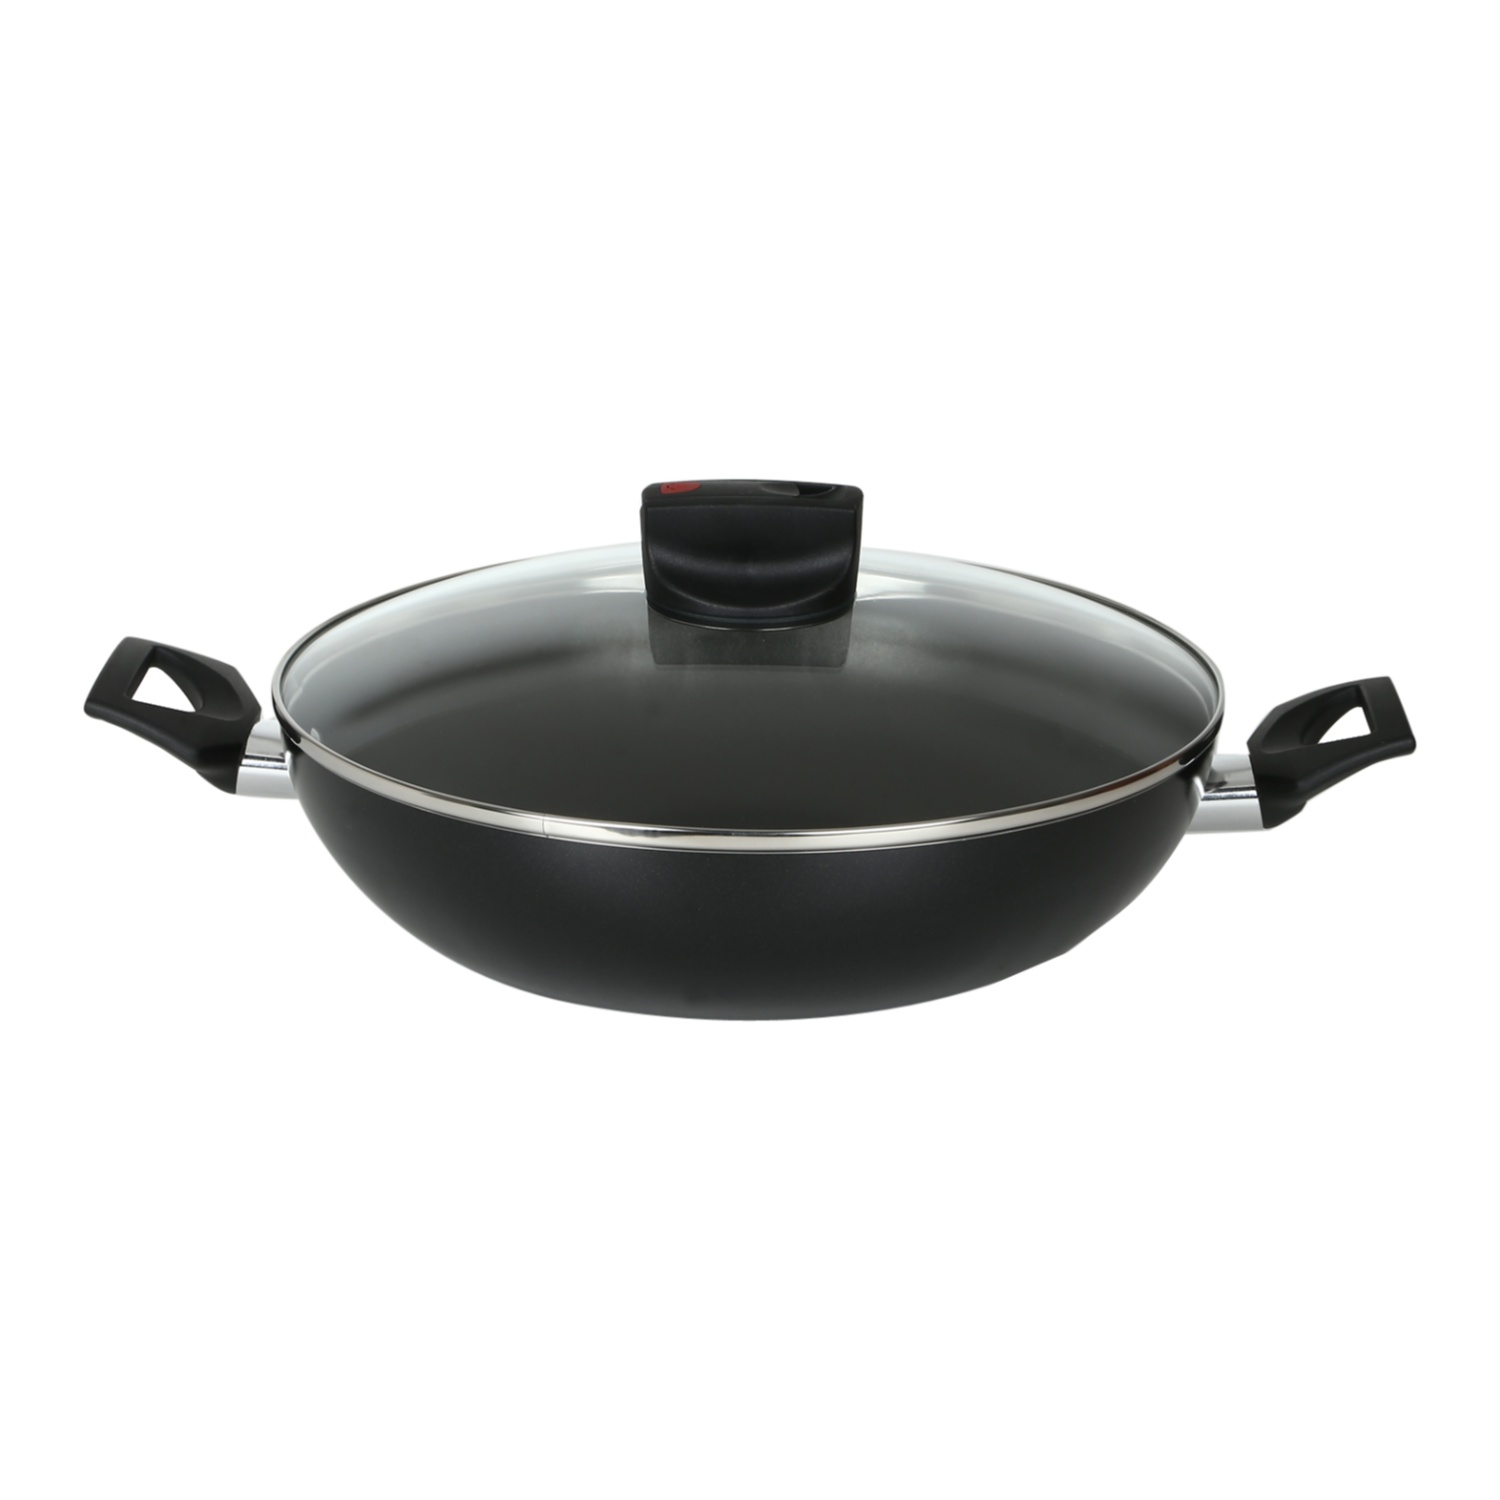 Meyer Safecook 20cm kadai (Non stick , Not Induction Suitable) Hard Anodized Aluminium Fry Pans in Black Colour by meyer